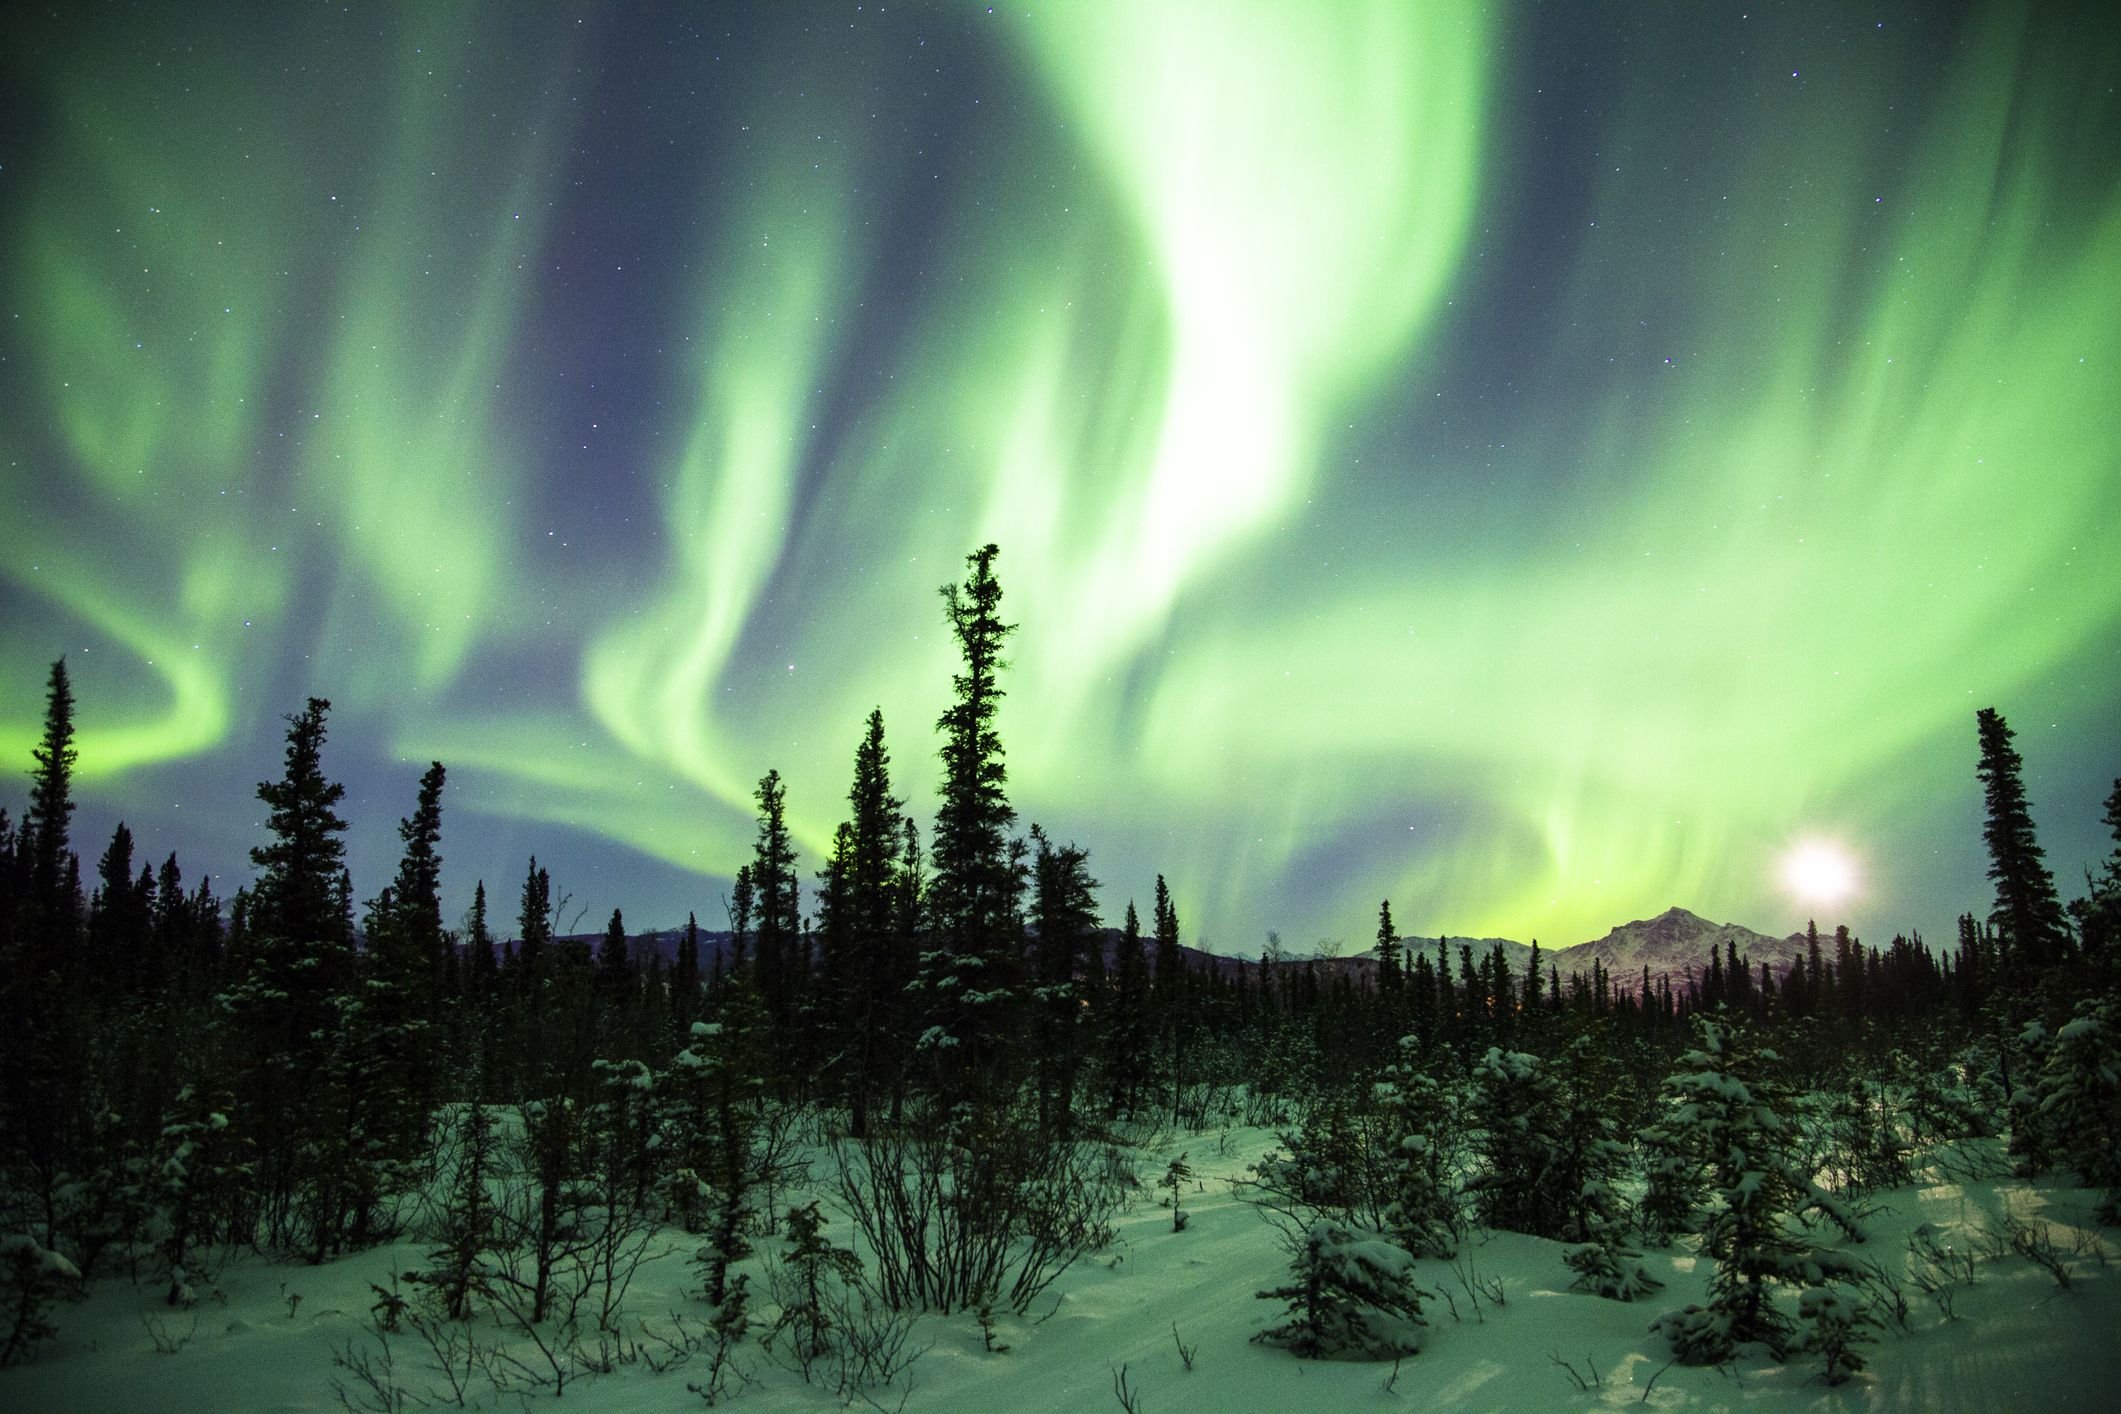 The Northern Lights Will Be Visible Over Northern States in the U.S. Tonight